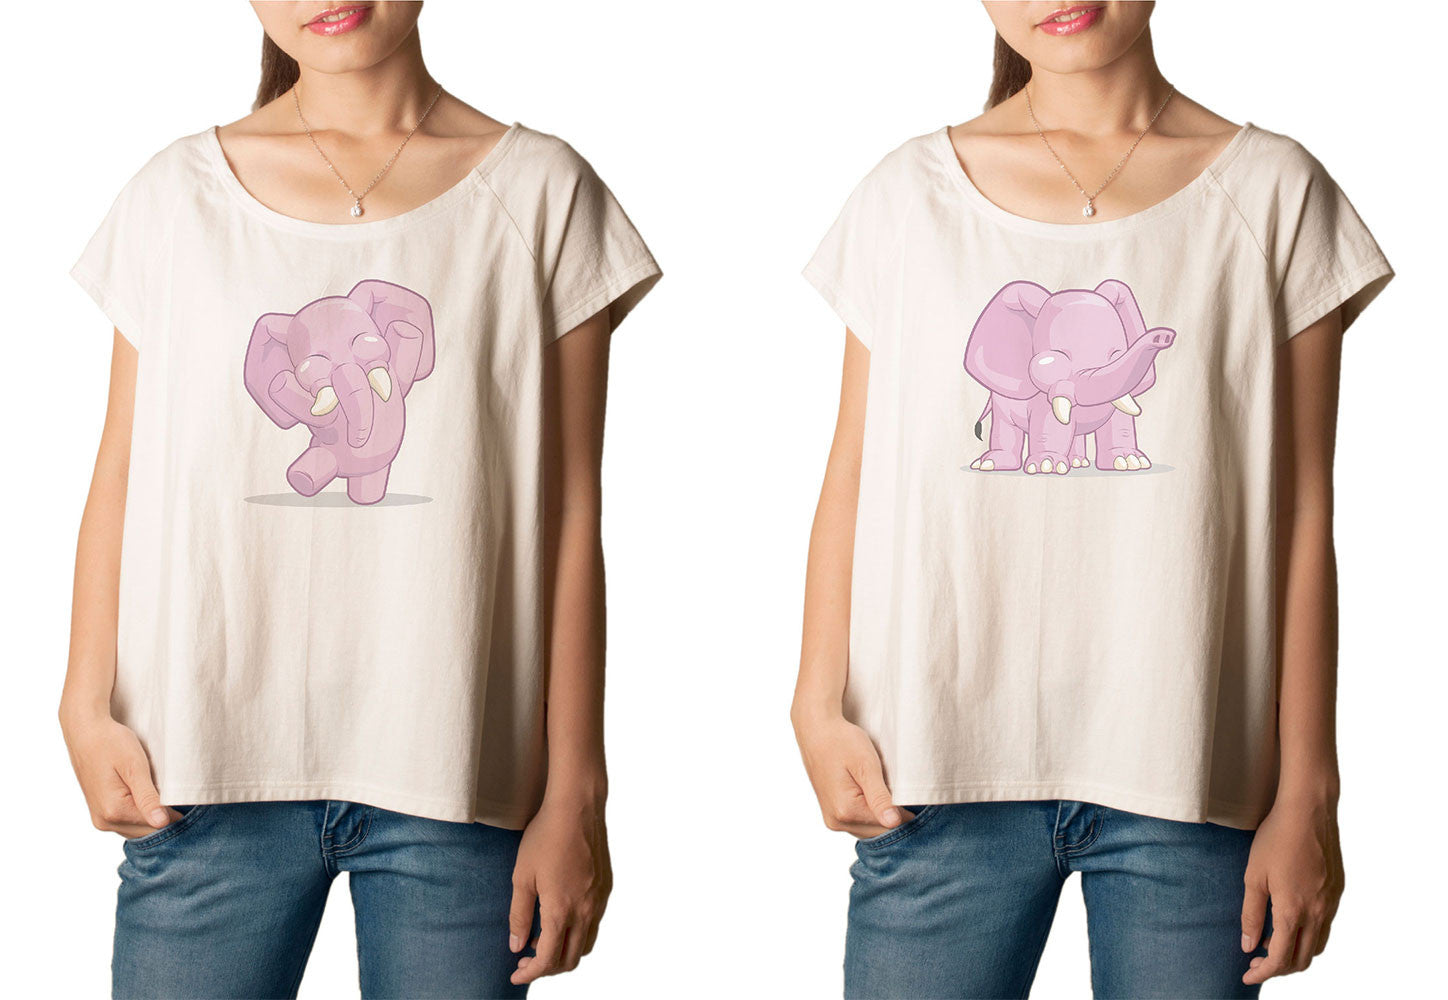 Women's Elephant Dancing Printed cotton T-shirt  Tee WTS_01